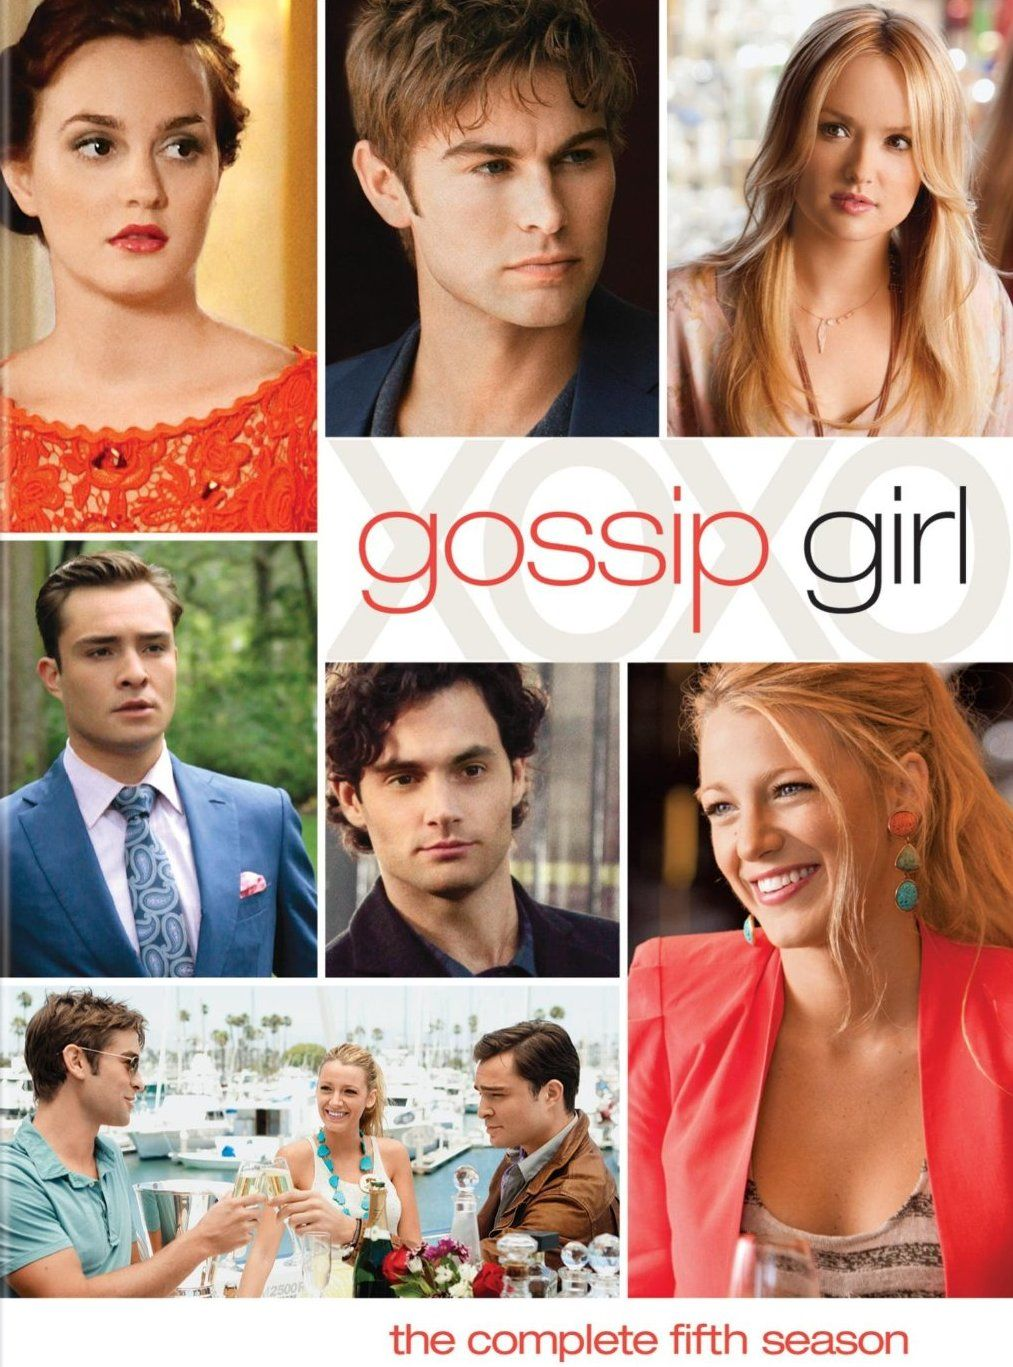 Are you looking for Gossip Girls HD Wallpapers? Download latest collection of Gossip Girls HD Wallpapers from our website Wallpapers111.